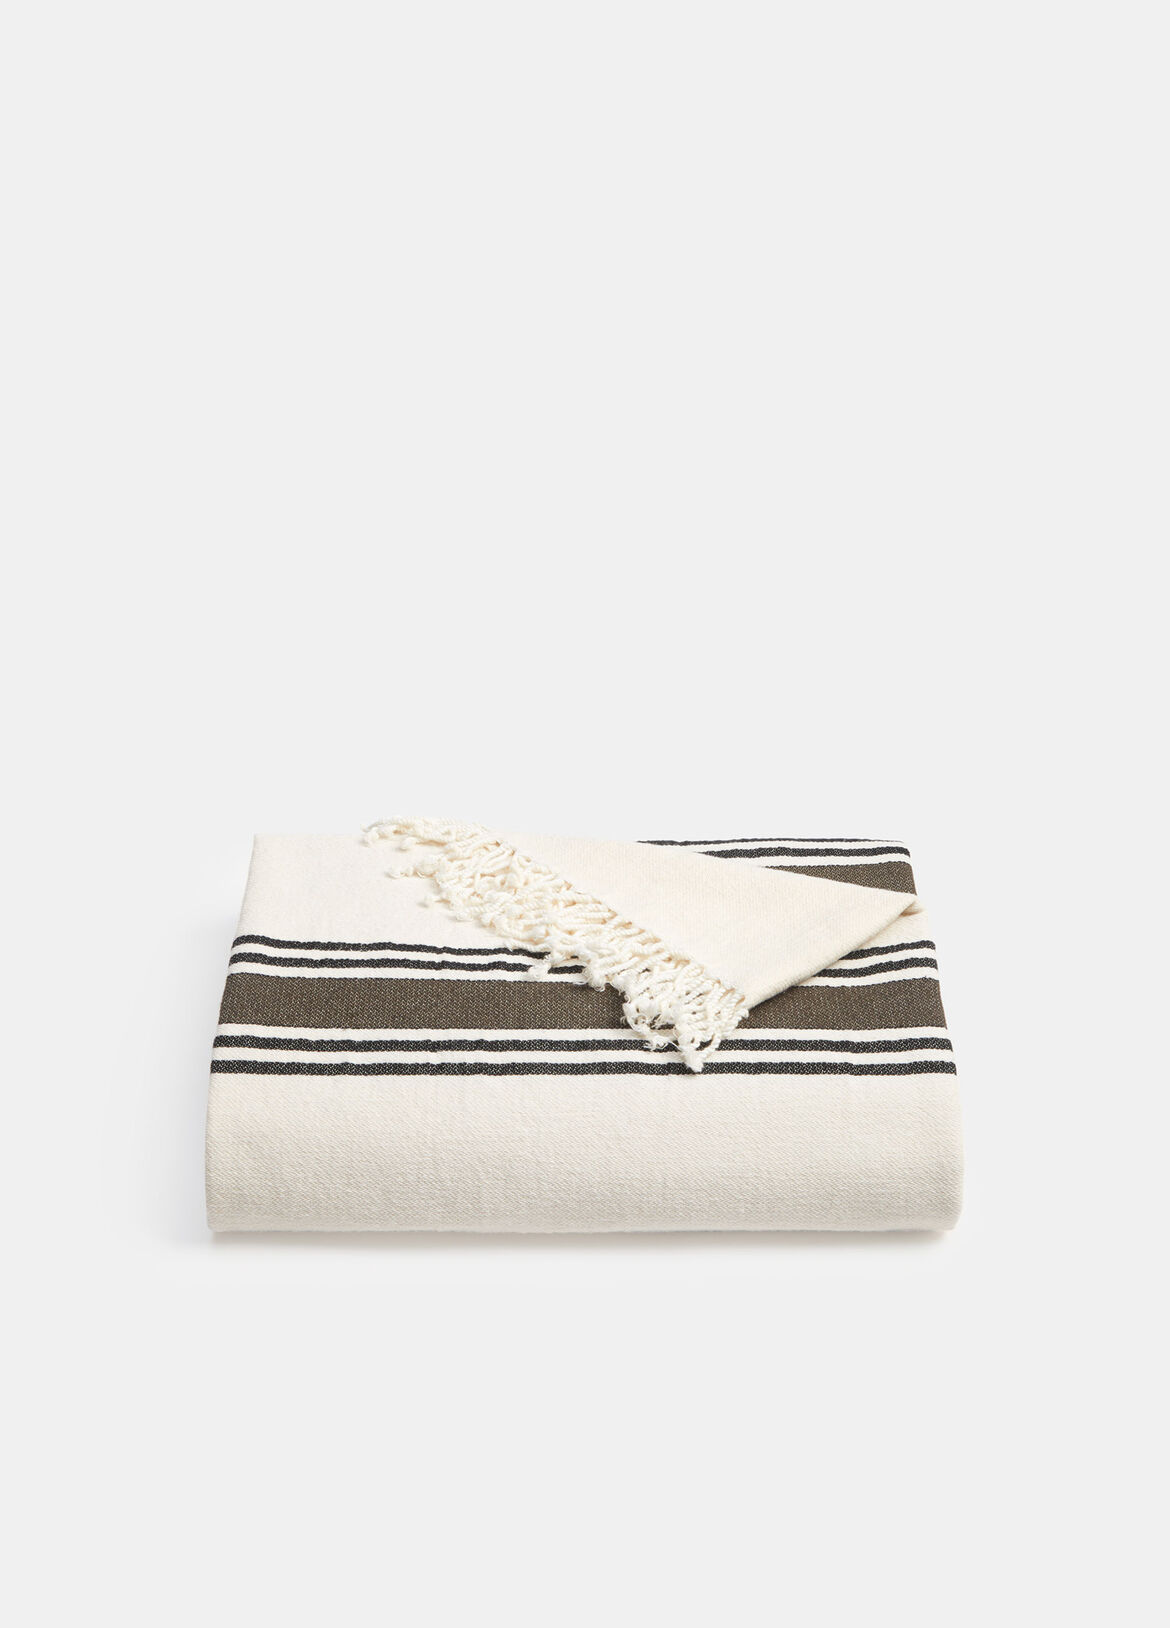 빈스 Vince Border Stripe Blanket,WHITE/OLIVE/BLACK